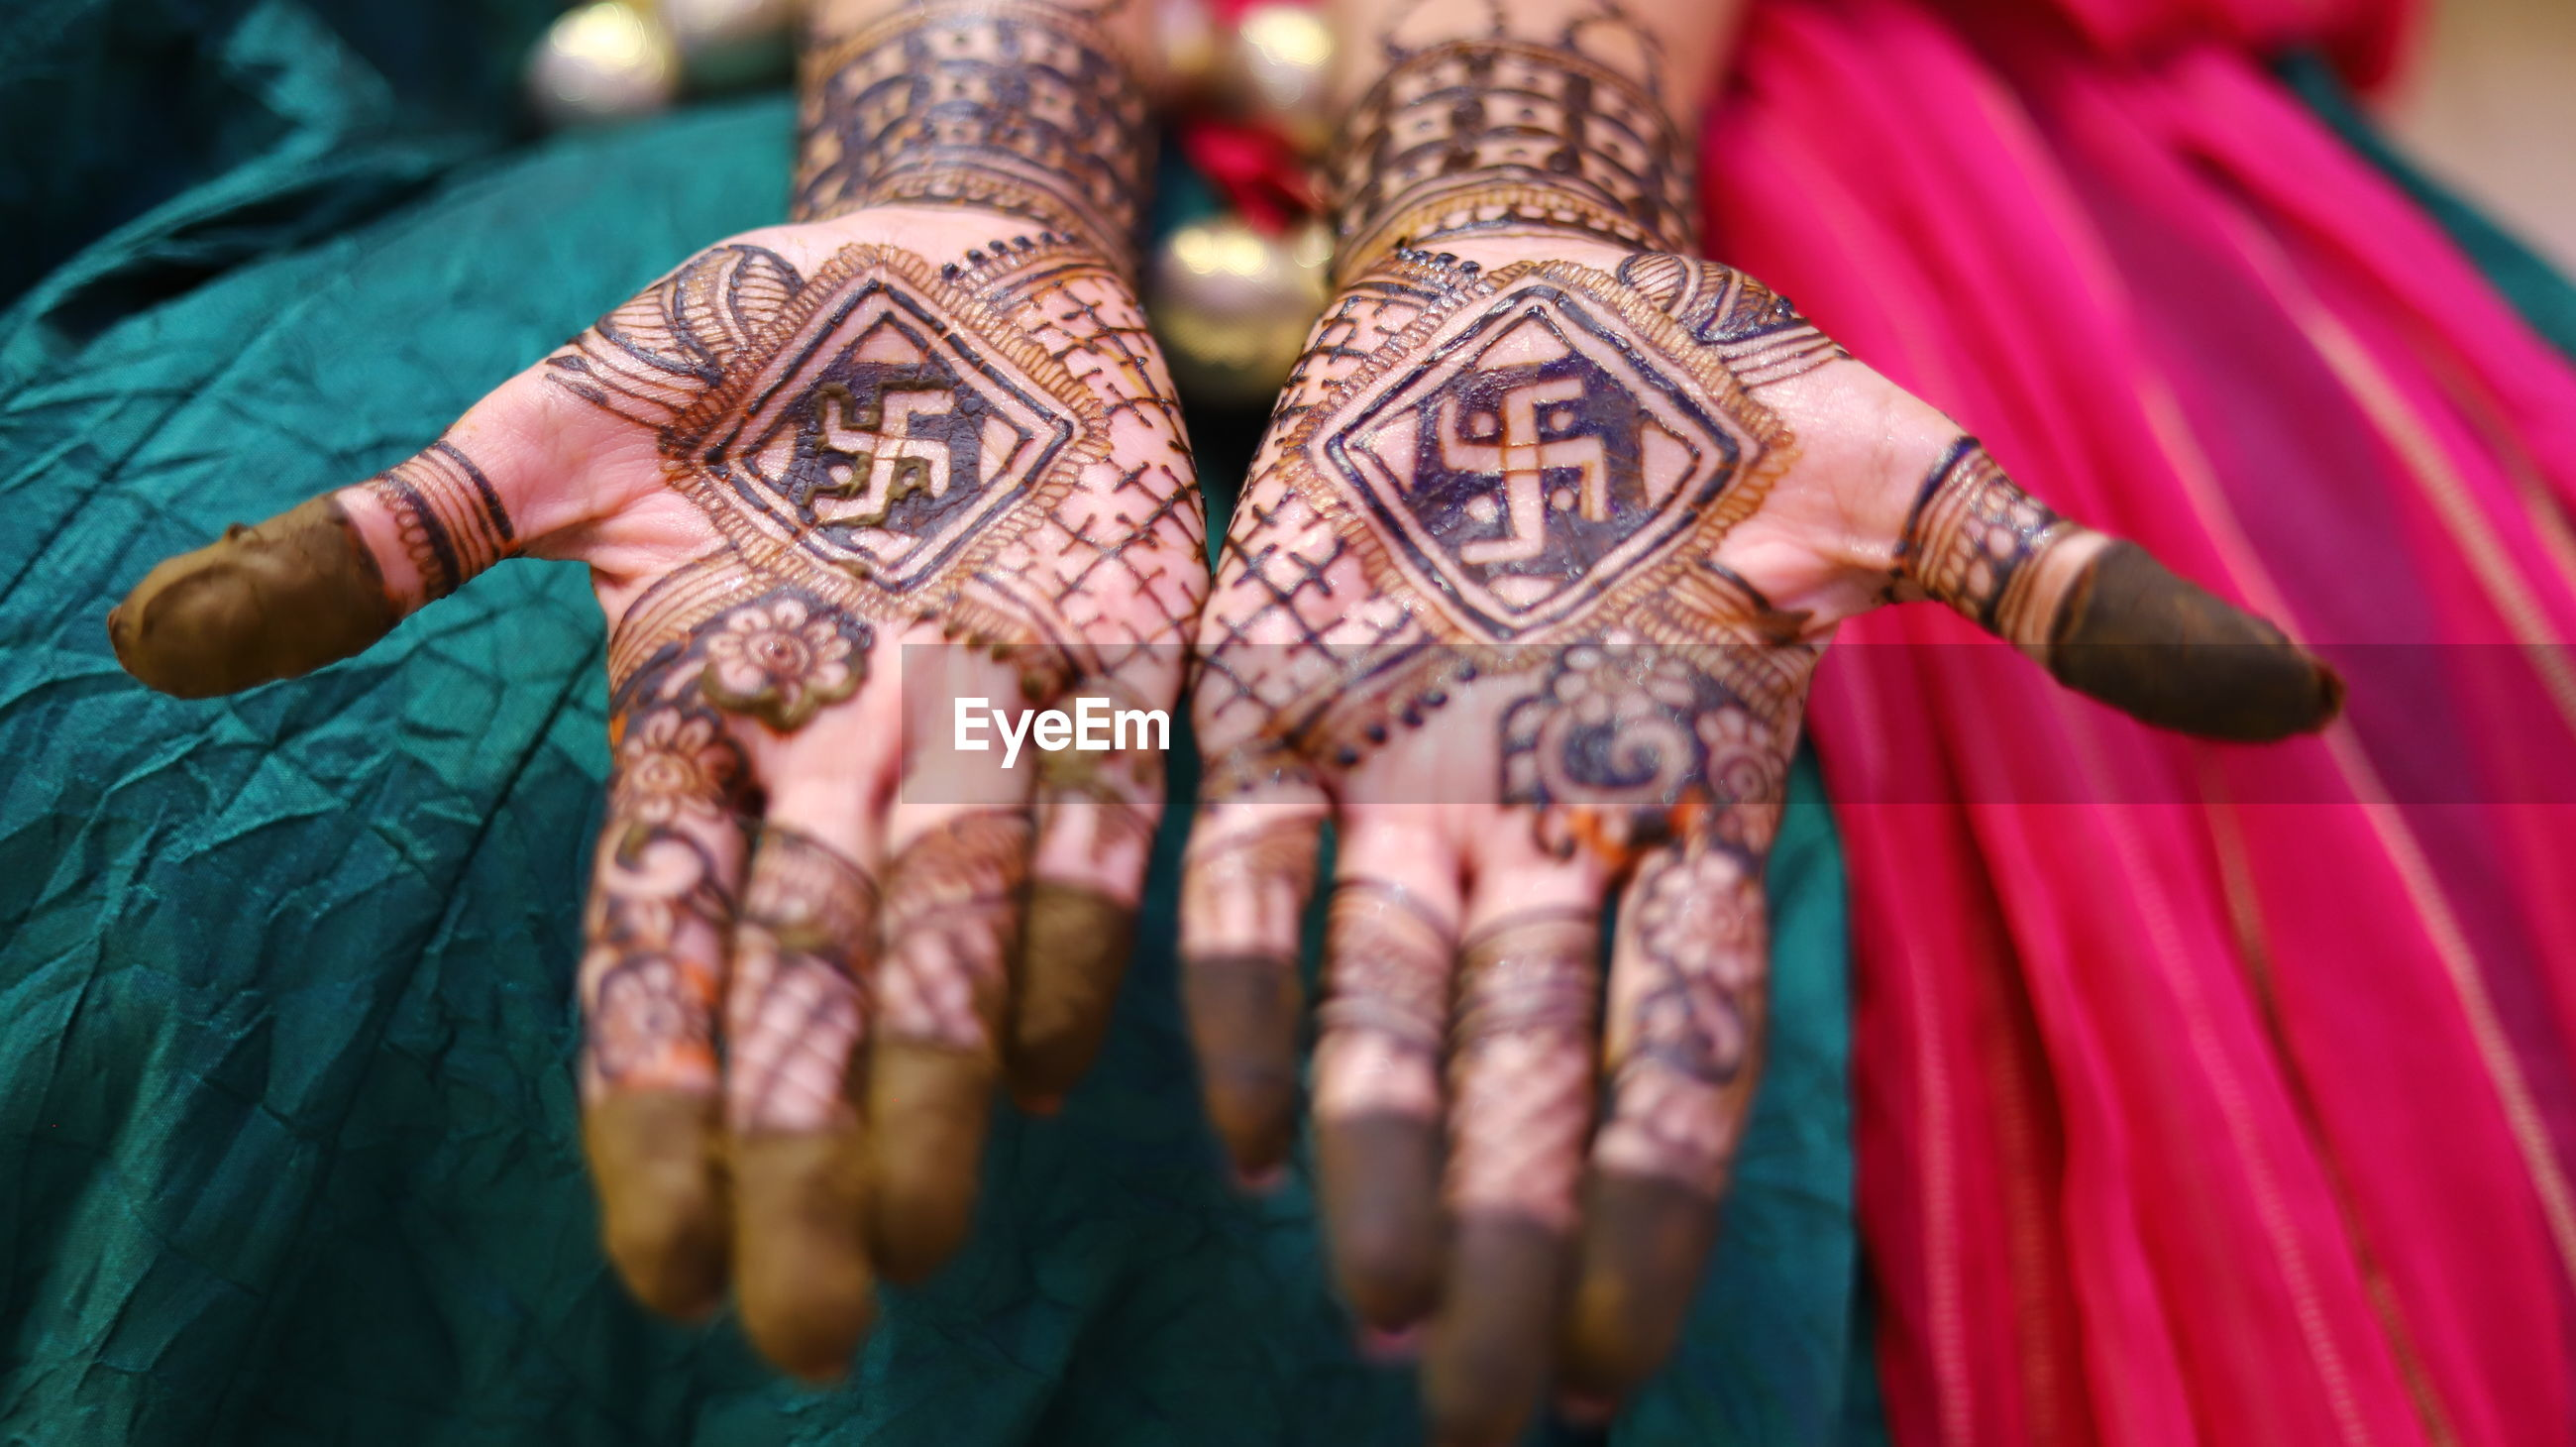 Close-up of woman hand with henna tattoo